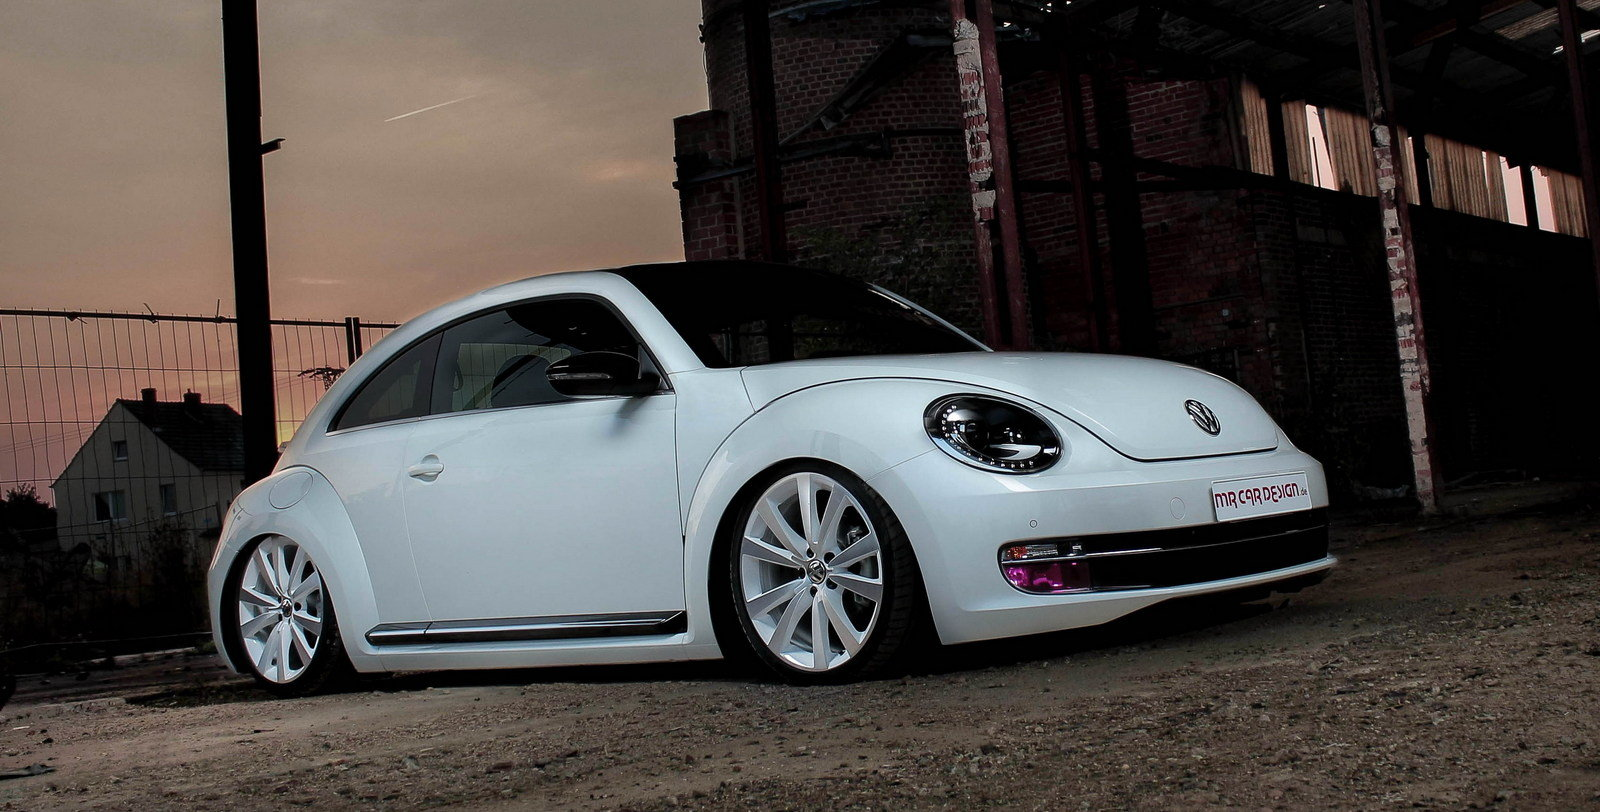 2014 volkswagen beetle tdi by mr car design picture 527400 car review top speed. Black Bedroom Furniture Sets. Home Design Ideas